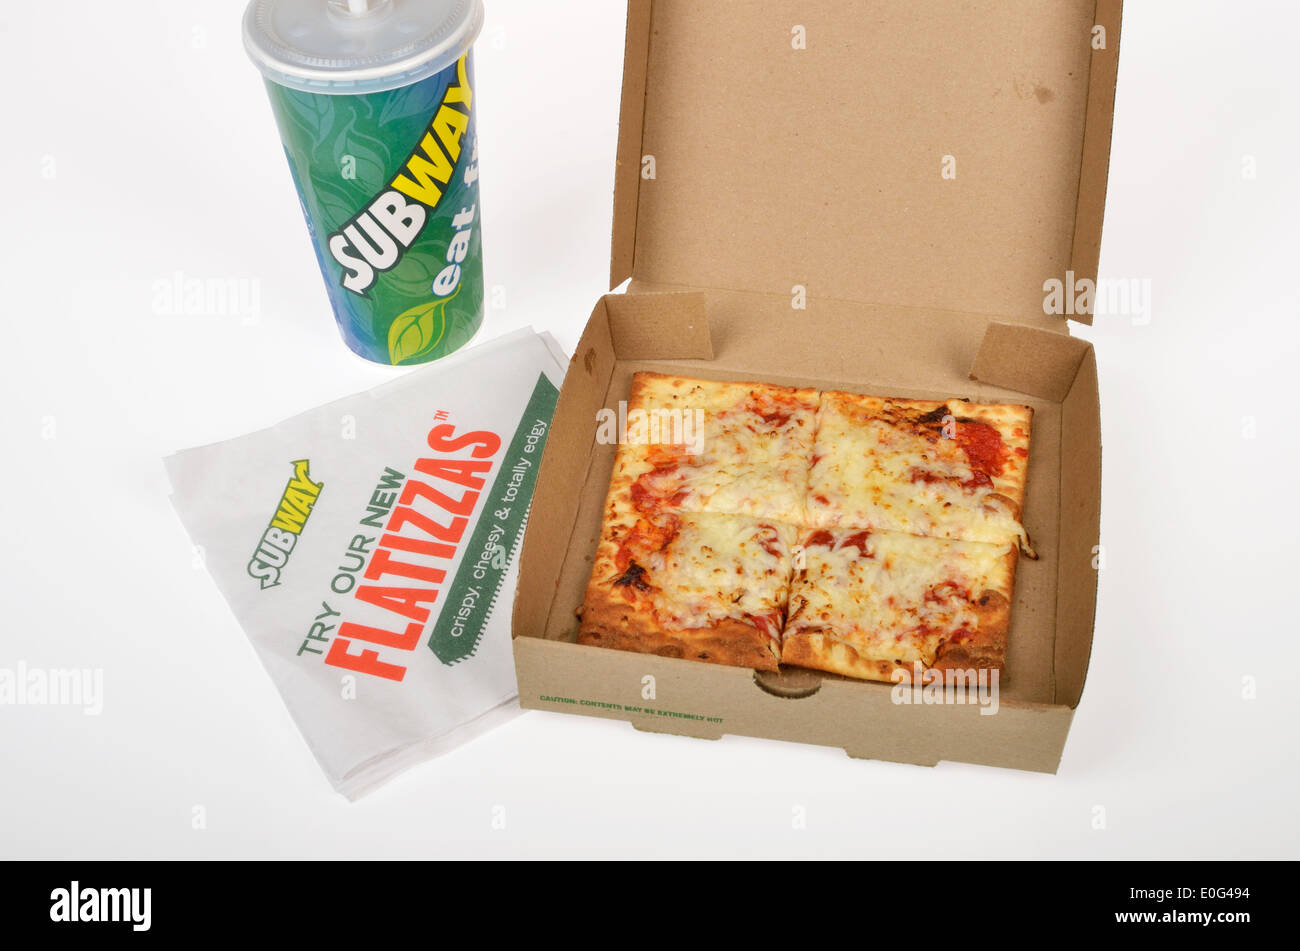 subway flatizza cheese pizza